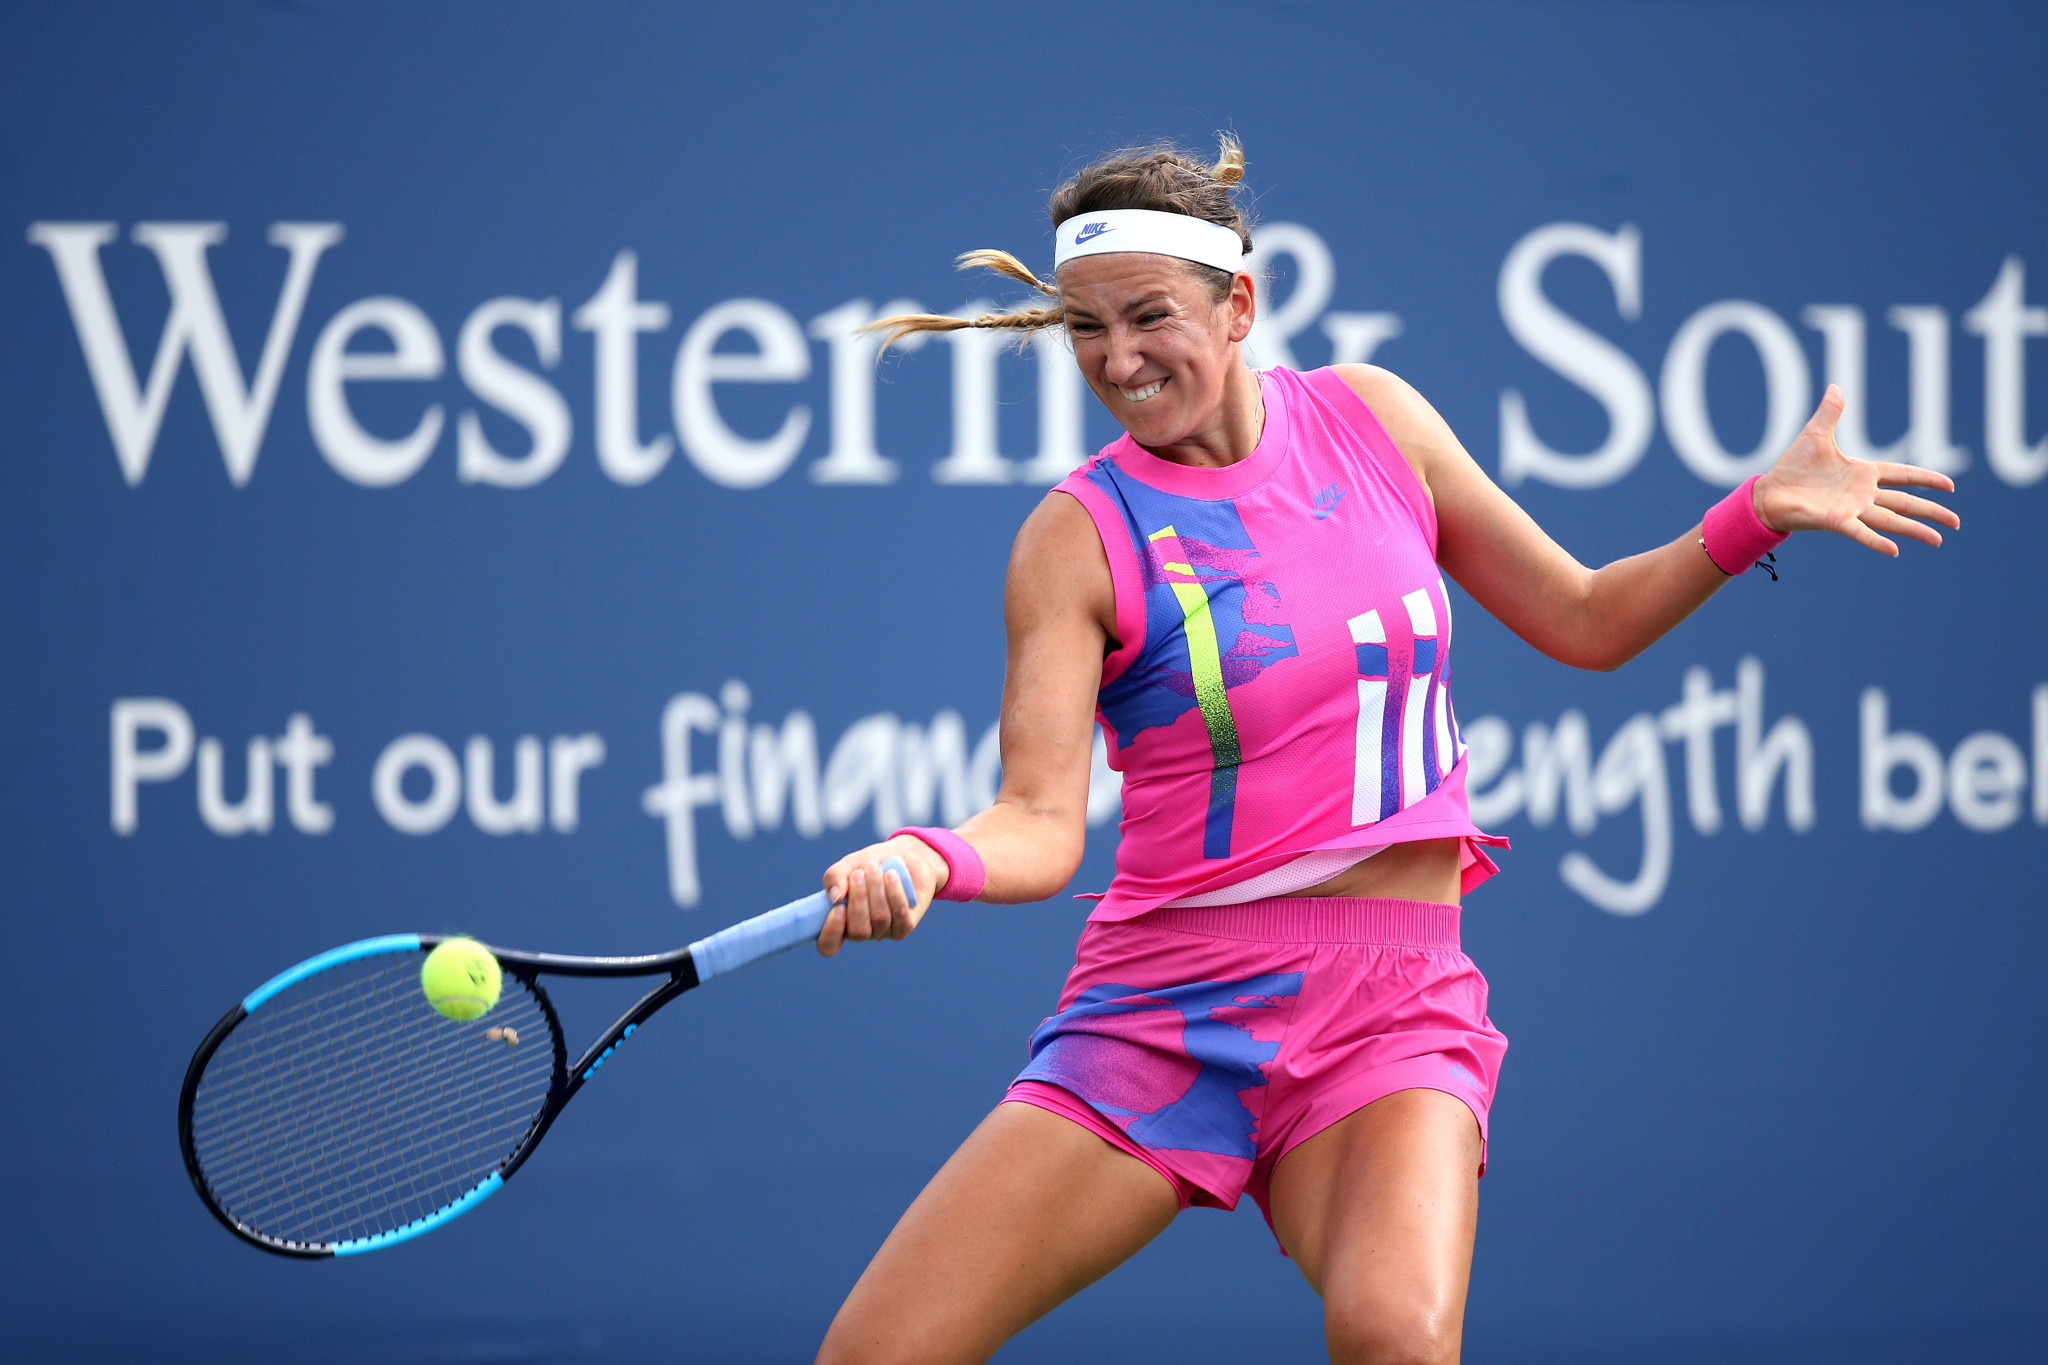 Victoria Azarenka won the women's Cincinnati Masters by walkover after her scheduled opponent Naomi Osaka withdrew ©Getty Images